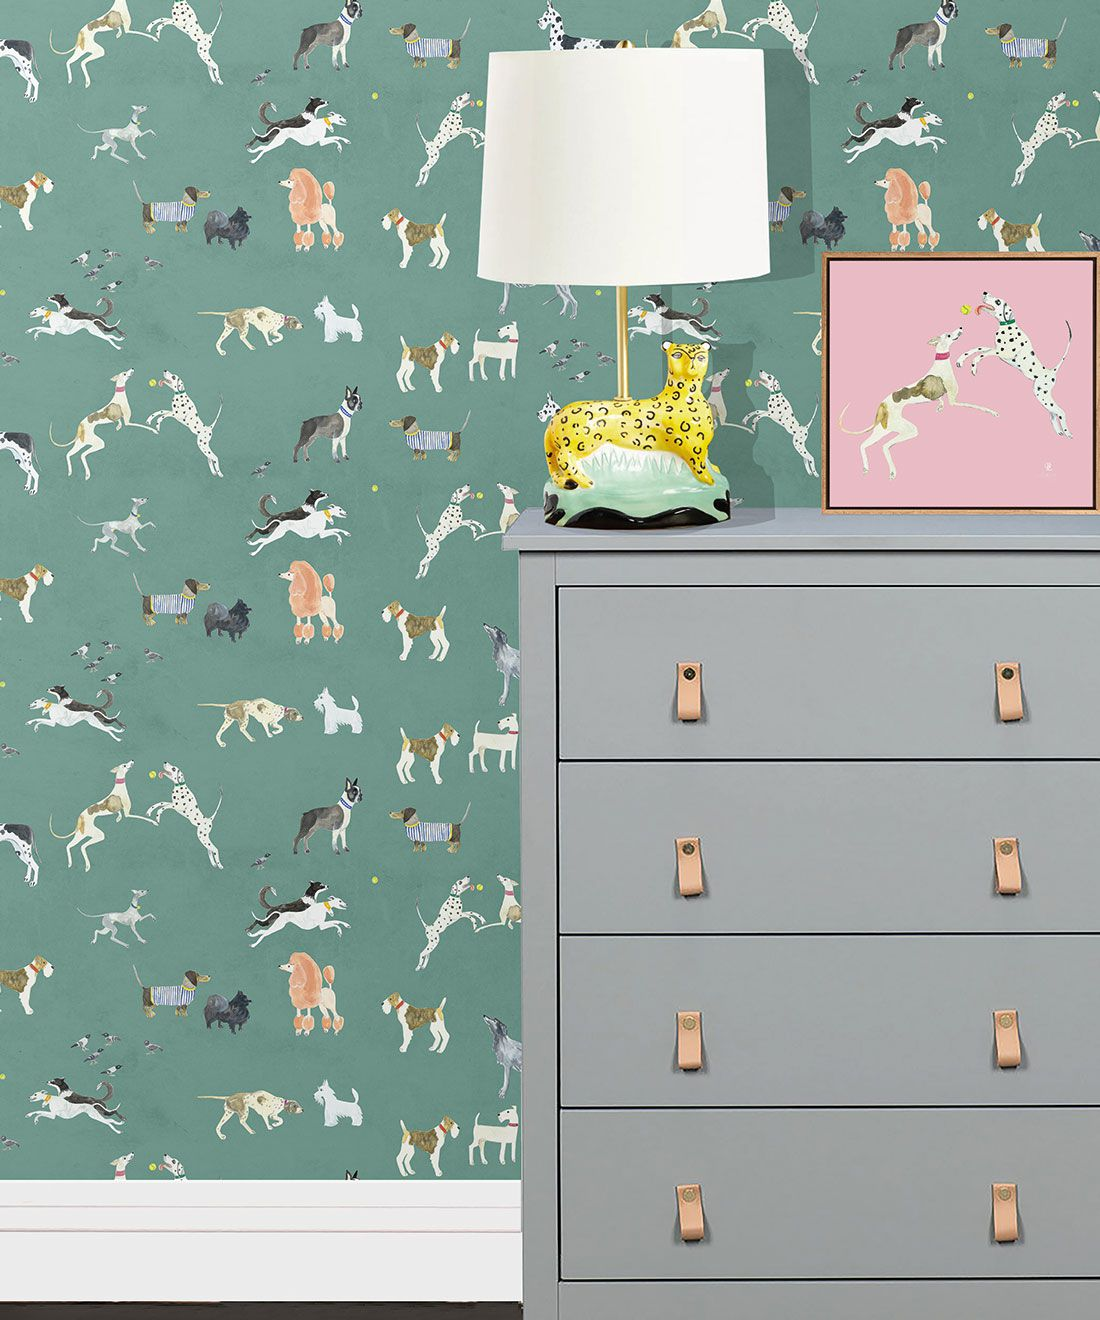 Doggies Wallpaper •Dog Wallpaper •Turquoise • Insitu with lamp on dresser